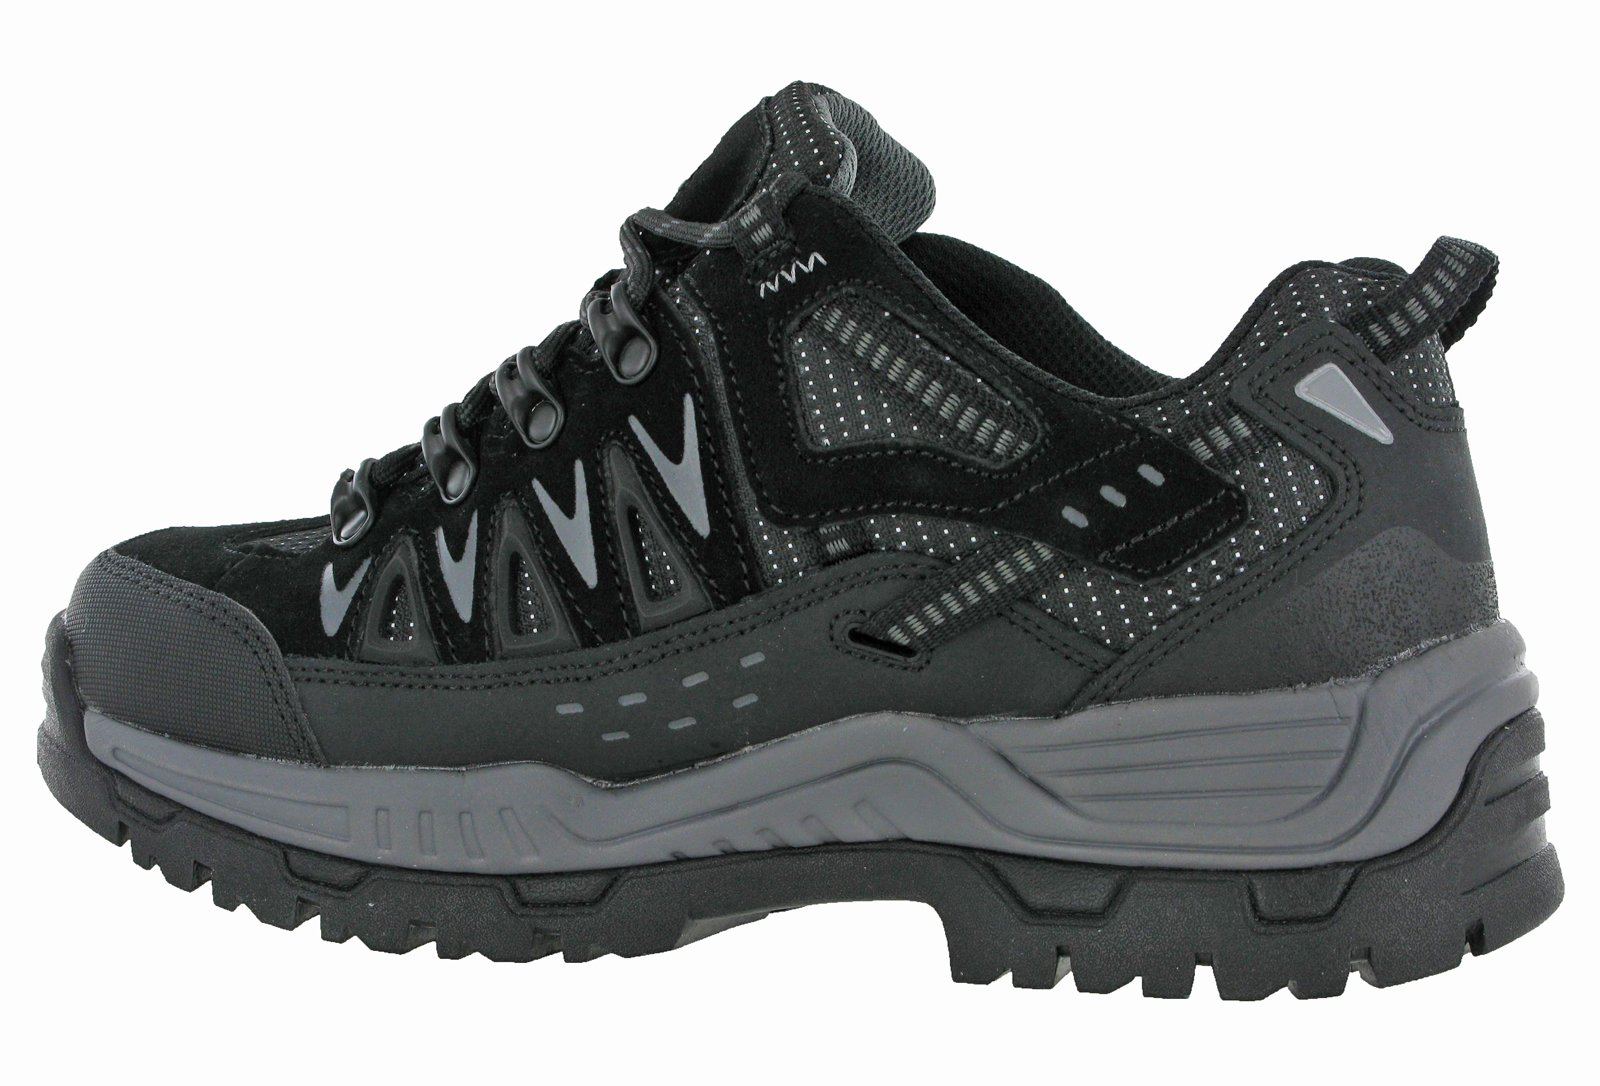 Northwest Waterproof Hiking Shoes Walking Piers Low Cut Trainers 3